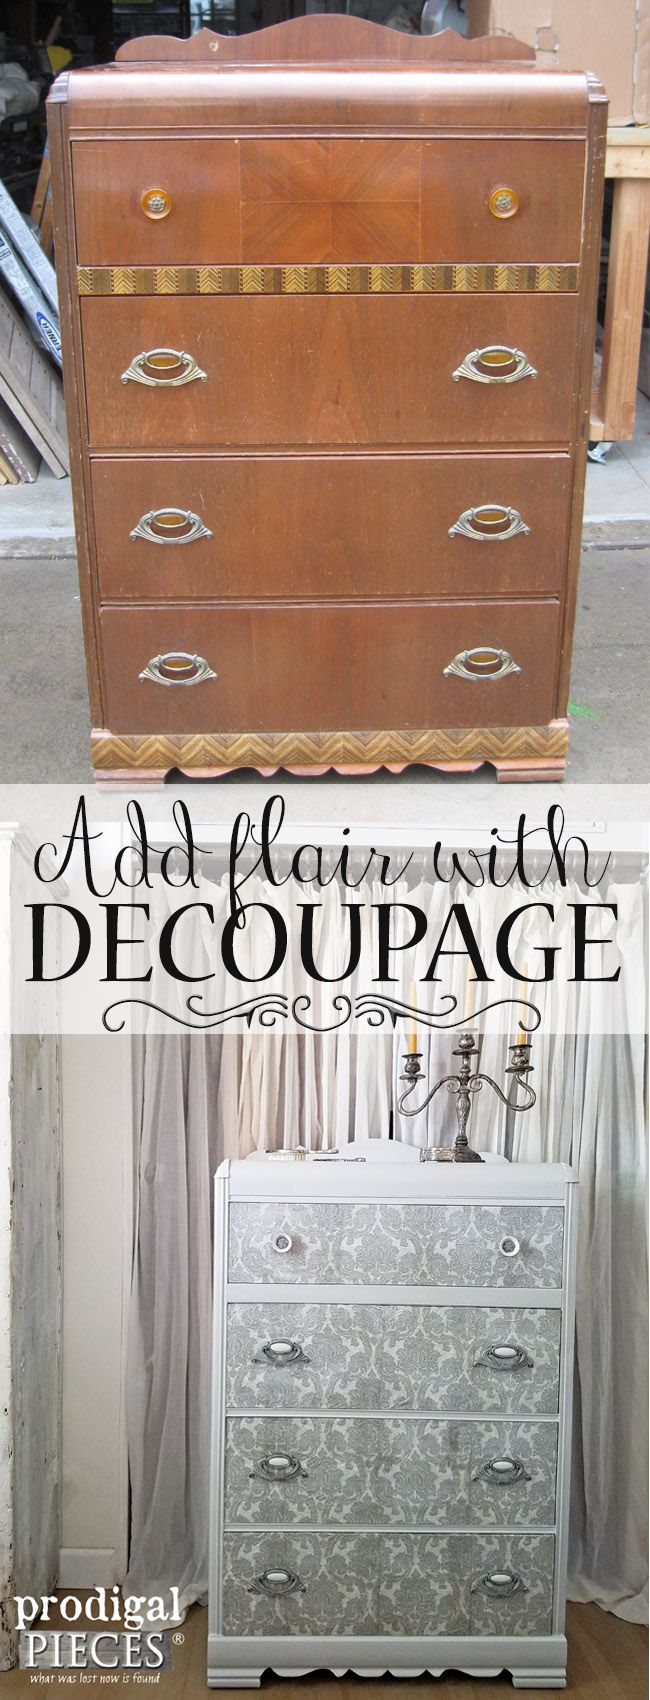 Add Flair to Your Furniture with Decoupage ~ DIY Tutorial by Prodigal Pieces   www.prodigalpieces.com